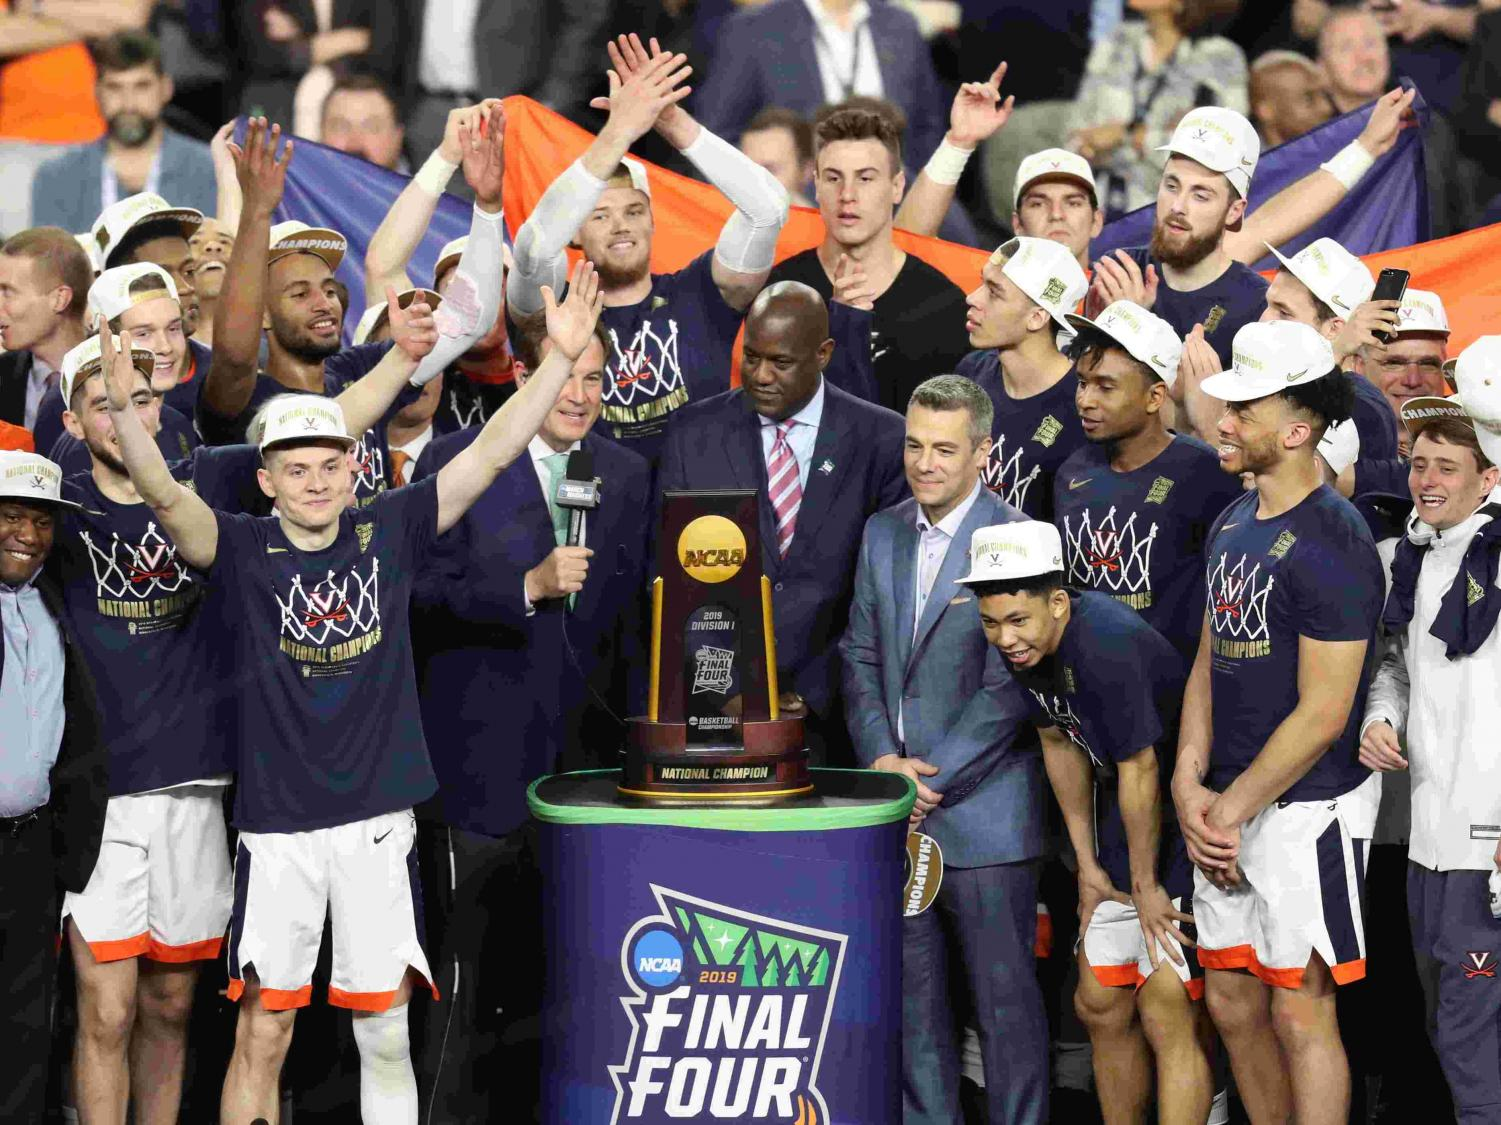 The trophy presentation to the Virginia Cavaliers as they celebrate their win. The Cavaliers defeated  Texas Tech in the championship game on April 8th.